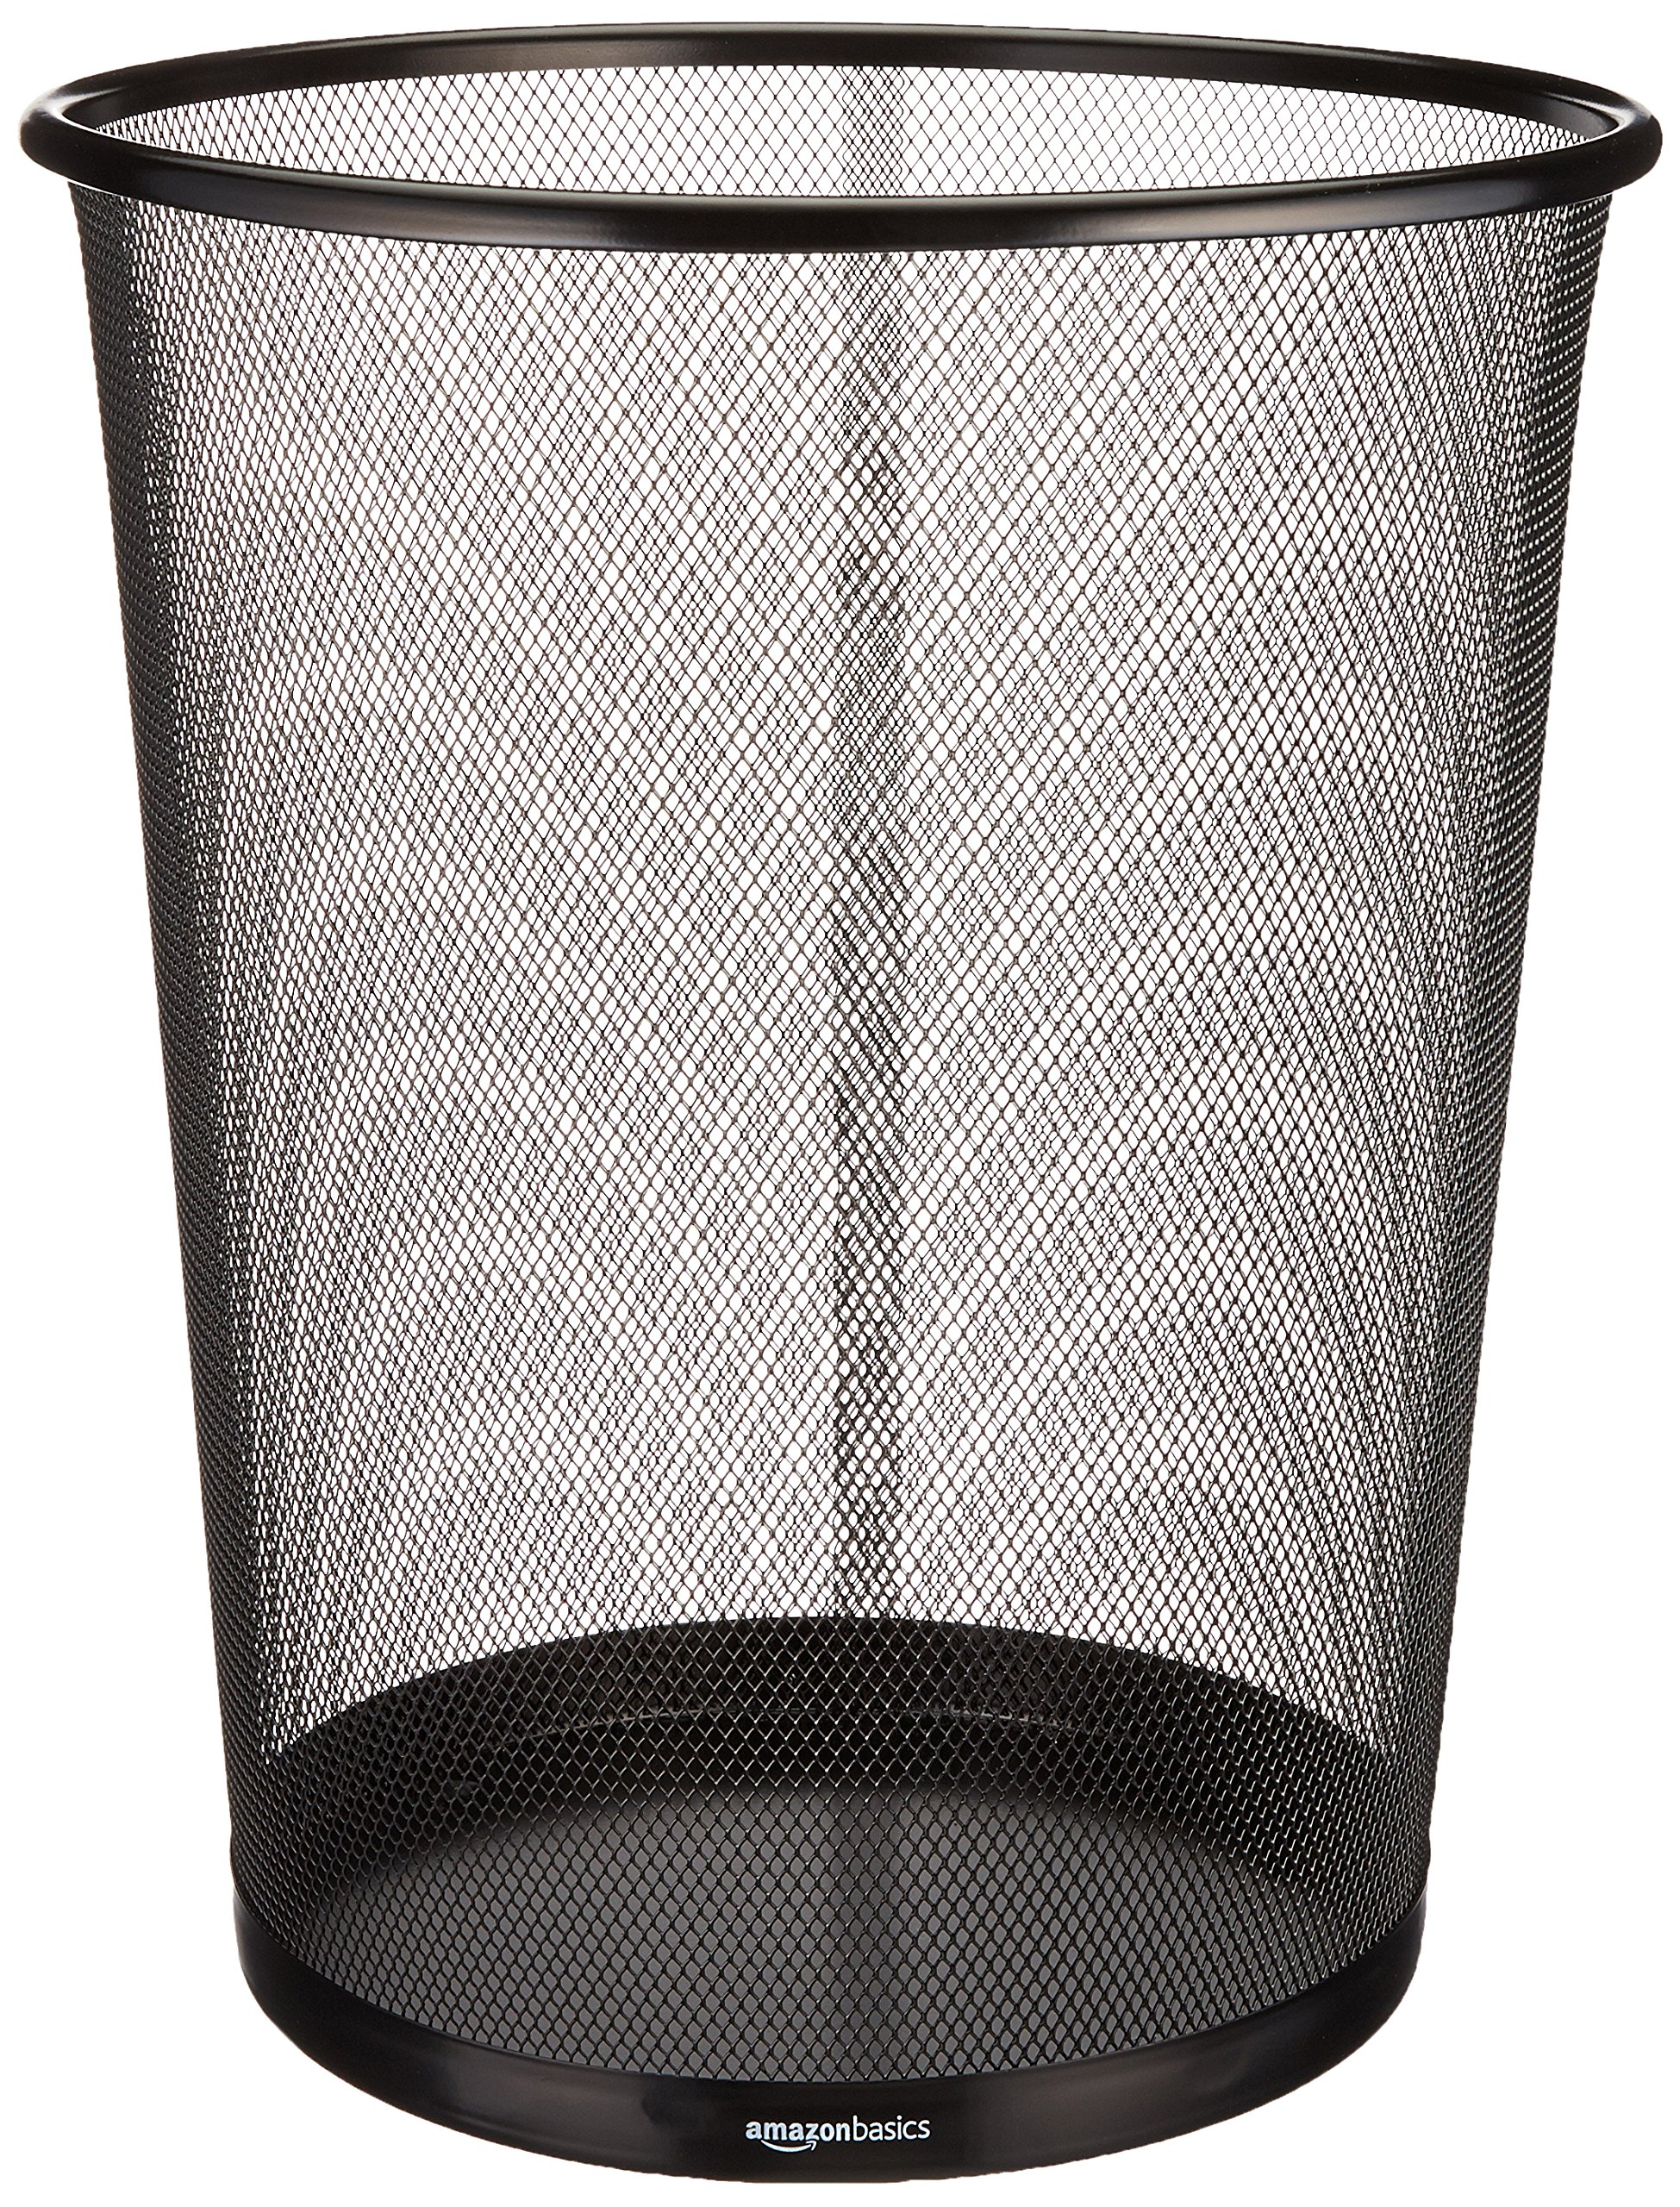 AmazonBasics Mesh Trash Can Wastebasket, Black, 6-Pack by AmazonBasics